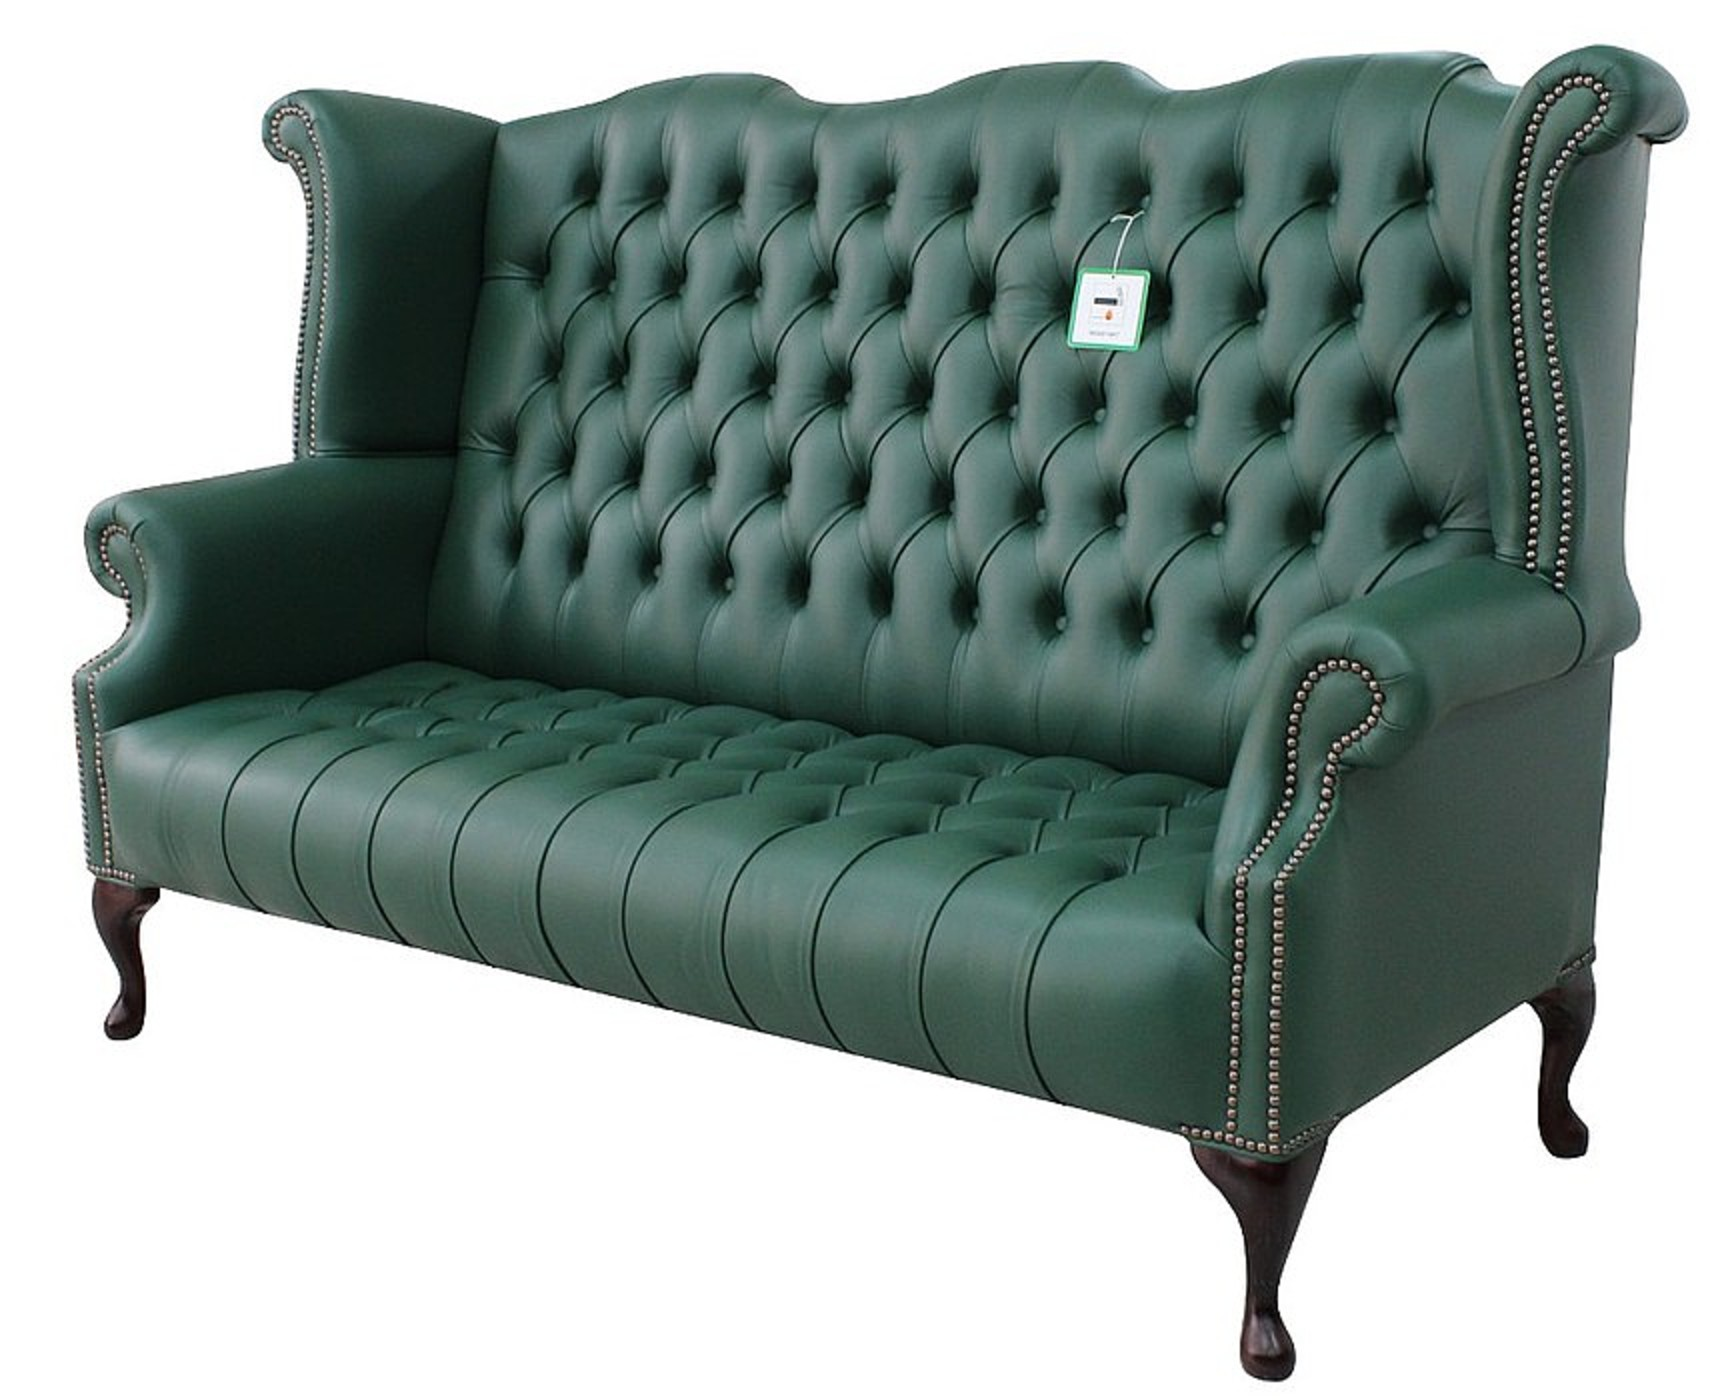 high back chesterfield sofa teddy bed green 3 seater wing designersofas4u queen anne buttoned seat bottle leather